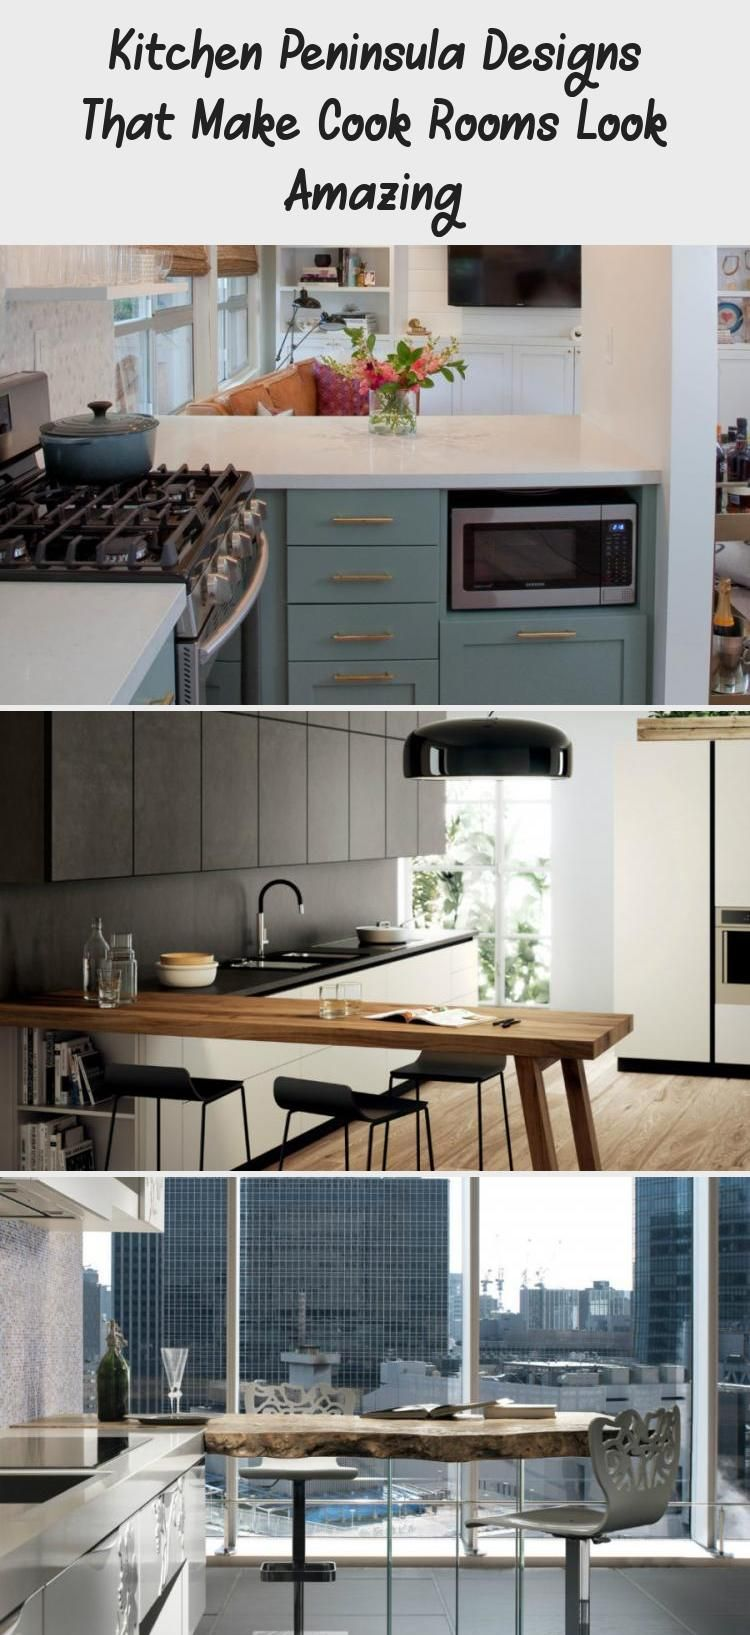 Kitchen Peninsula Designs That Make Cook Rooms Look